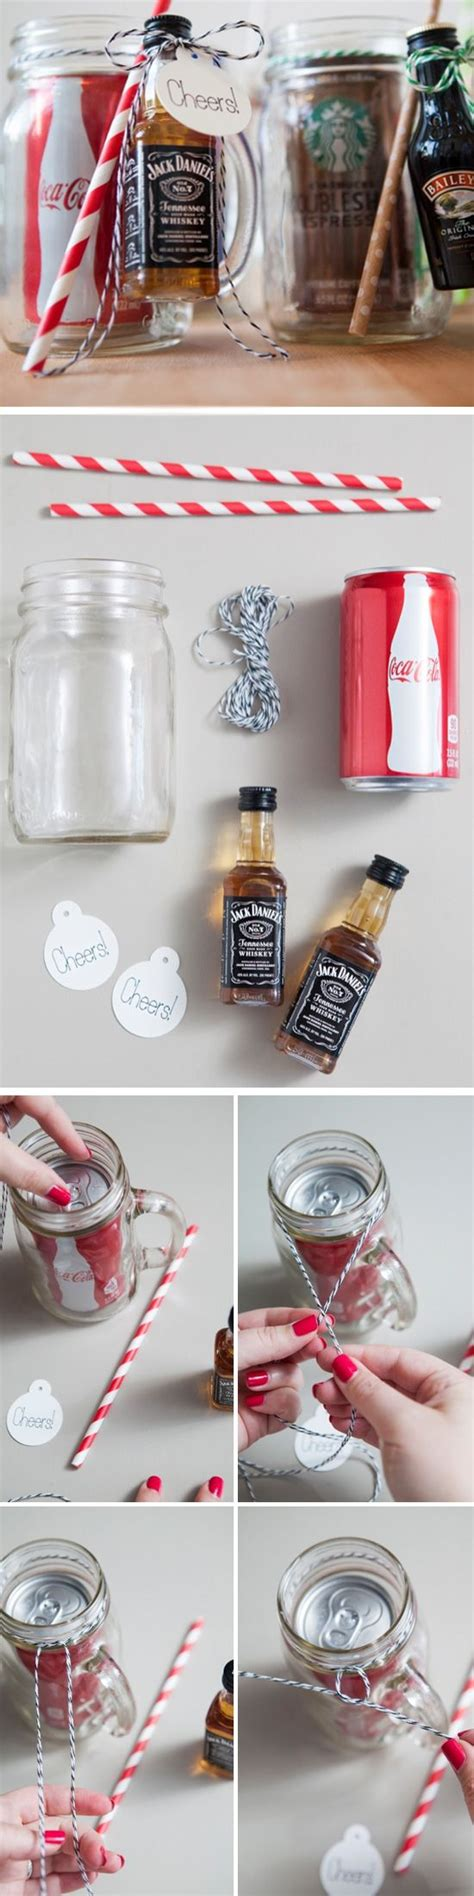 diy valentine s gifts for friends 1000 images about boyfriend gift ideas on pinterest